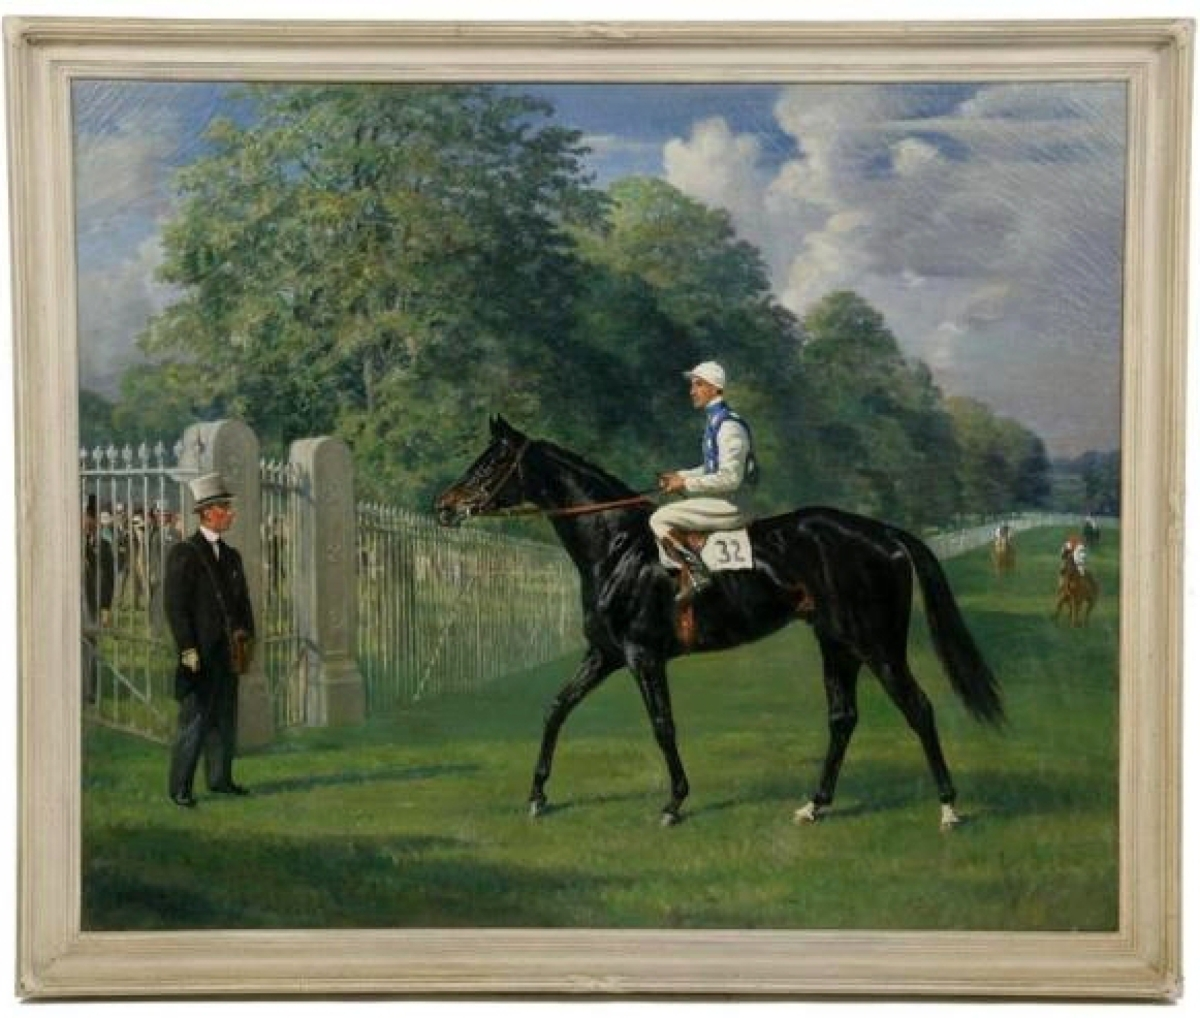 The top selling lot of the sale was this large portrait of the race horse Totaig painted by Franklin Brooke Voss (1880–1953), which finished at $46,800. In 1932, the horse won the Royal Hunt Cup at Ascot. He was the first American horse to win the race and an underdog at odds of 33-1.